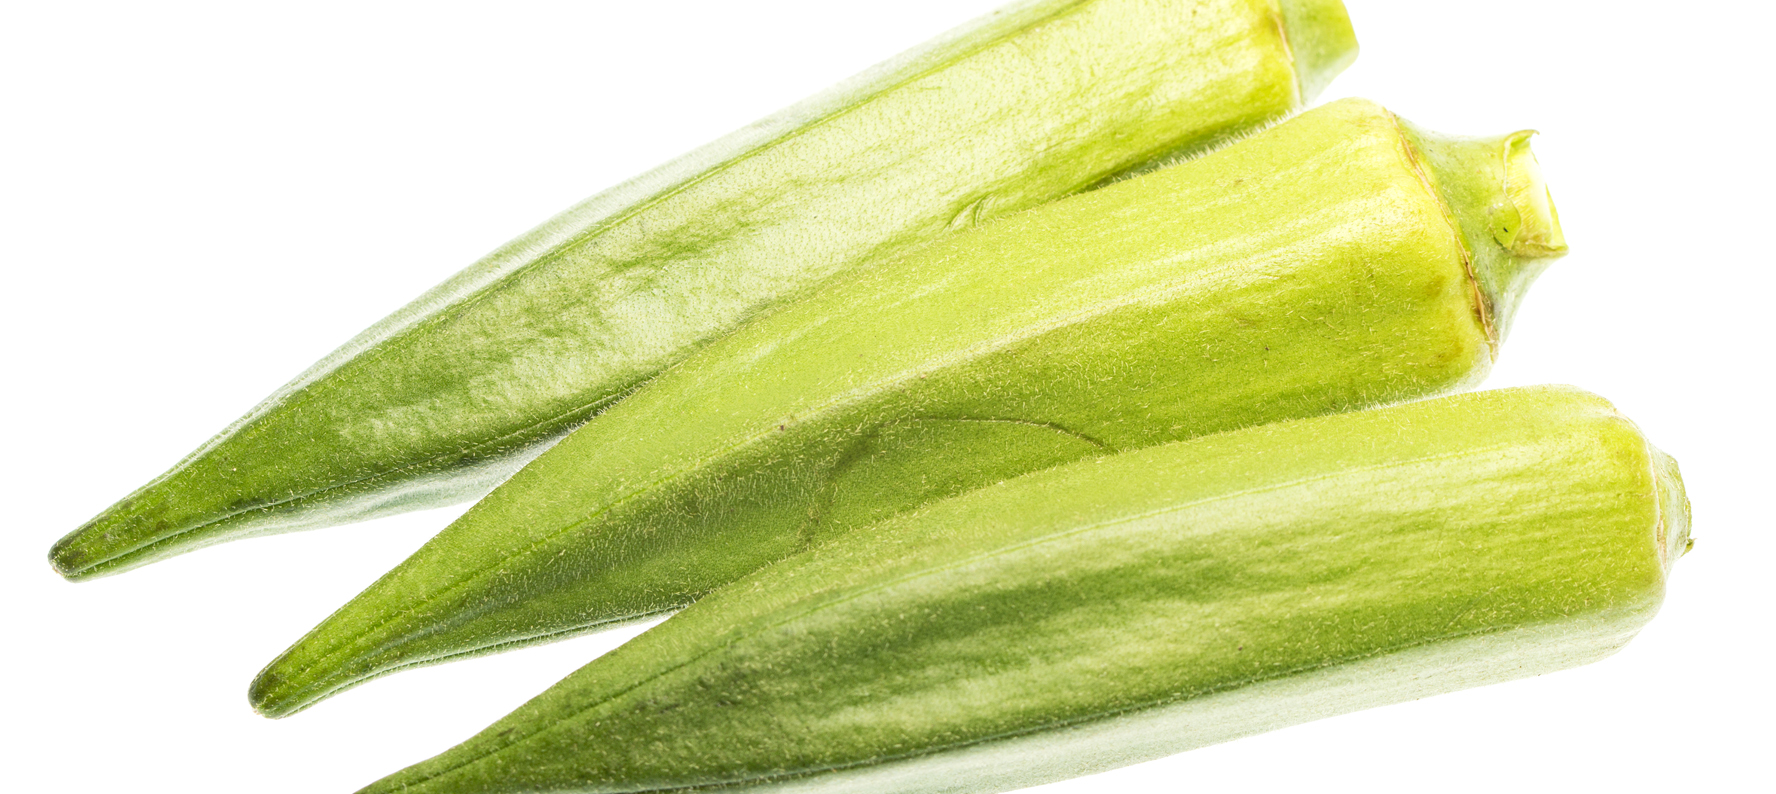 Abelmoschus esculentus (okra) is used in natural skin care products for its anti-oxidant and anti-inflammatory benefits.